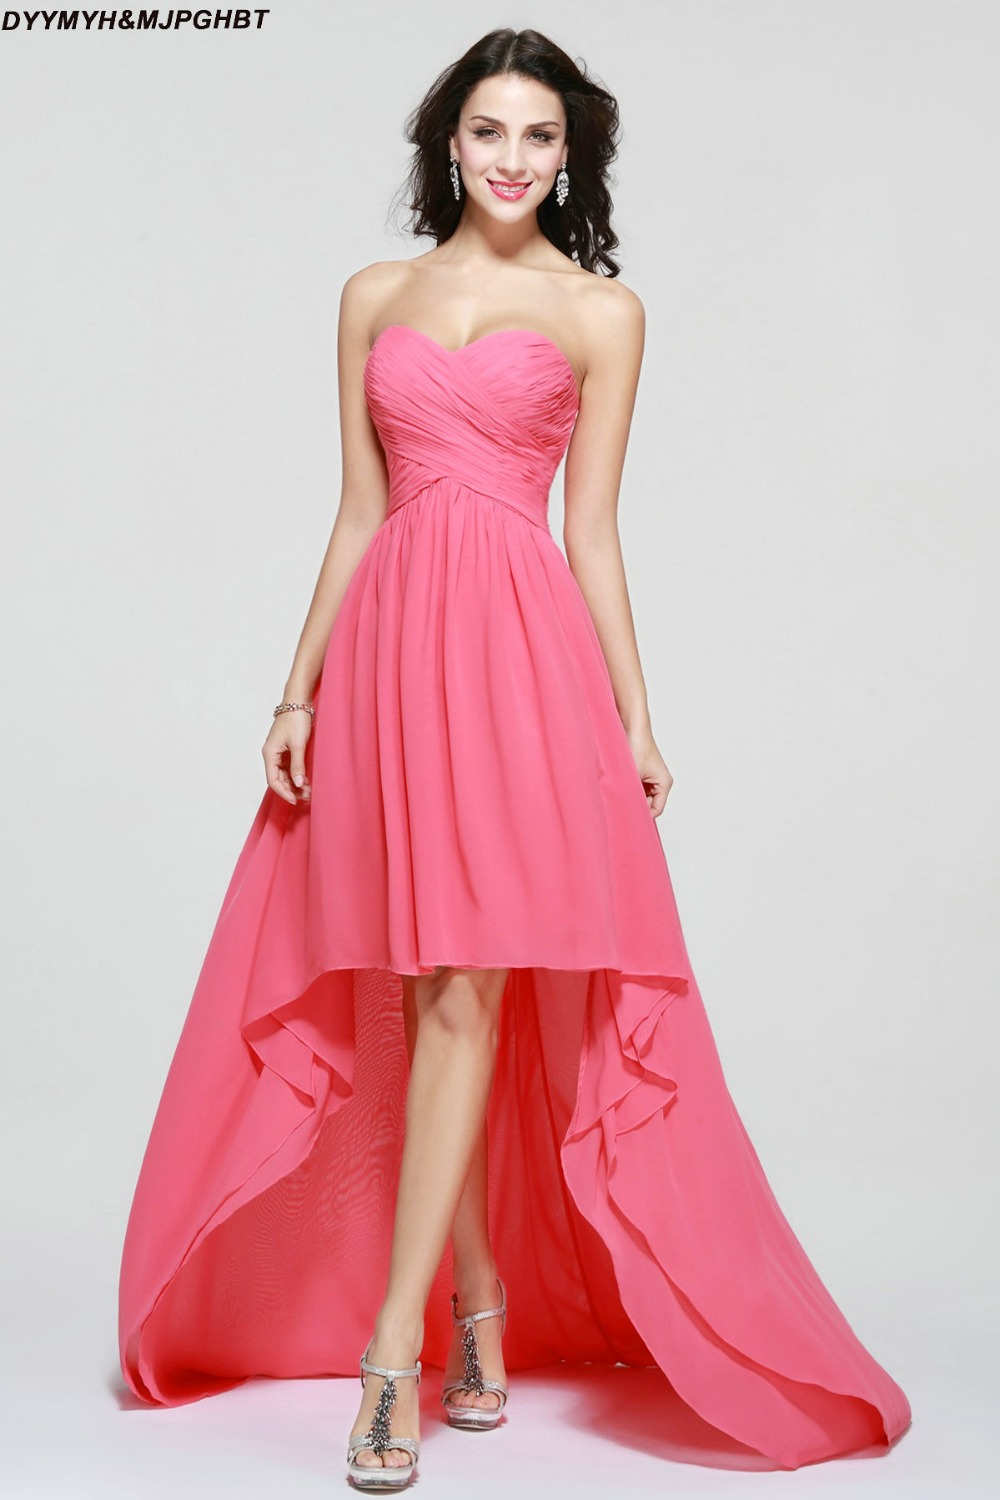 Fashionable short front and long back sweetheart pleat top fashionable short front and long back sweetheart pleat top asymmetrical hot pink bridesmaid dresses in bridesmaid dresses from weddings events on ombrellifo Gallery